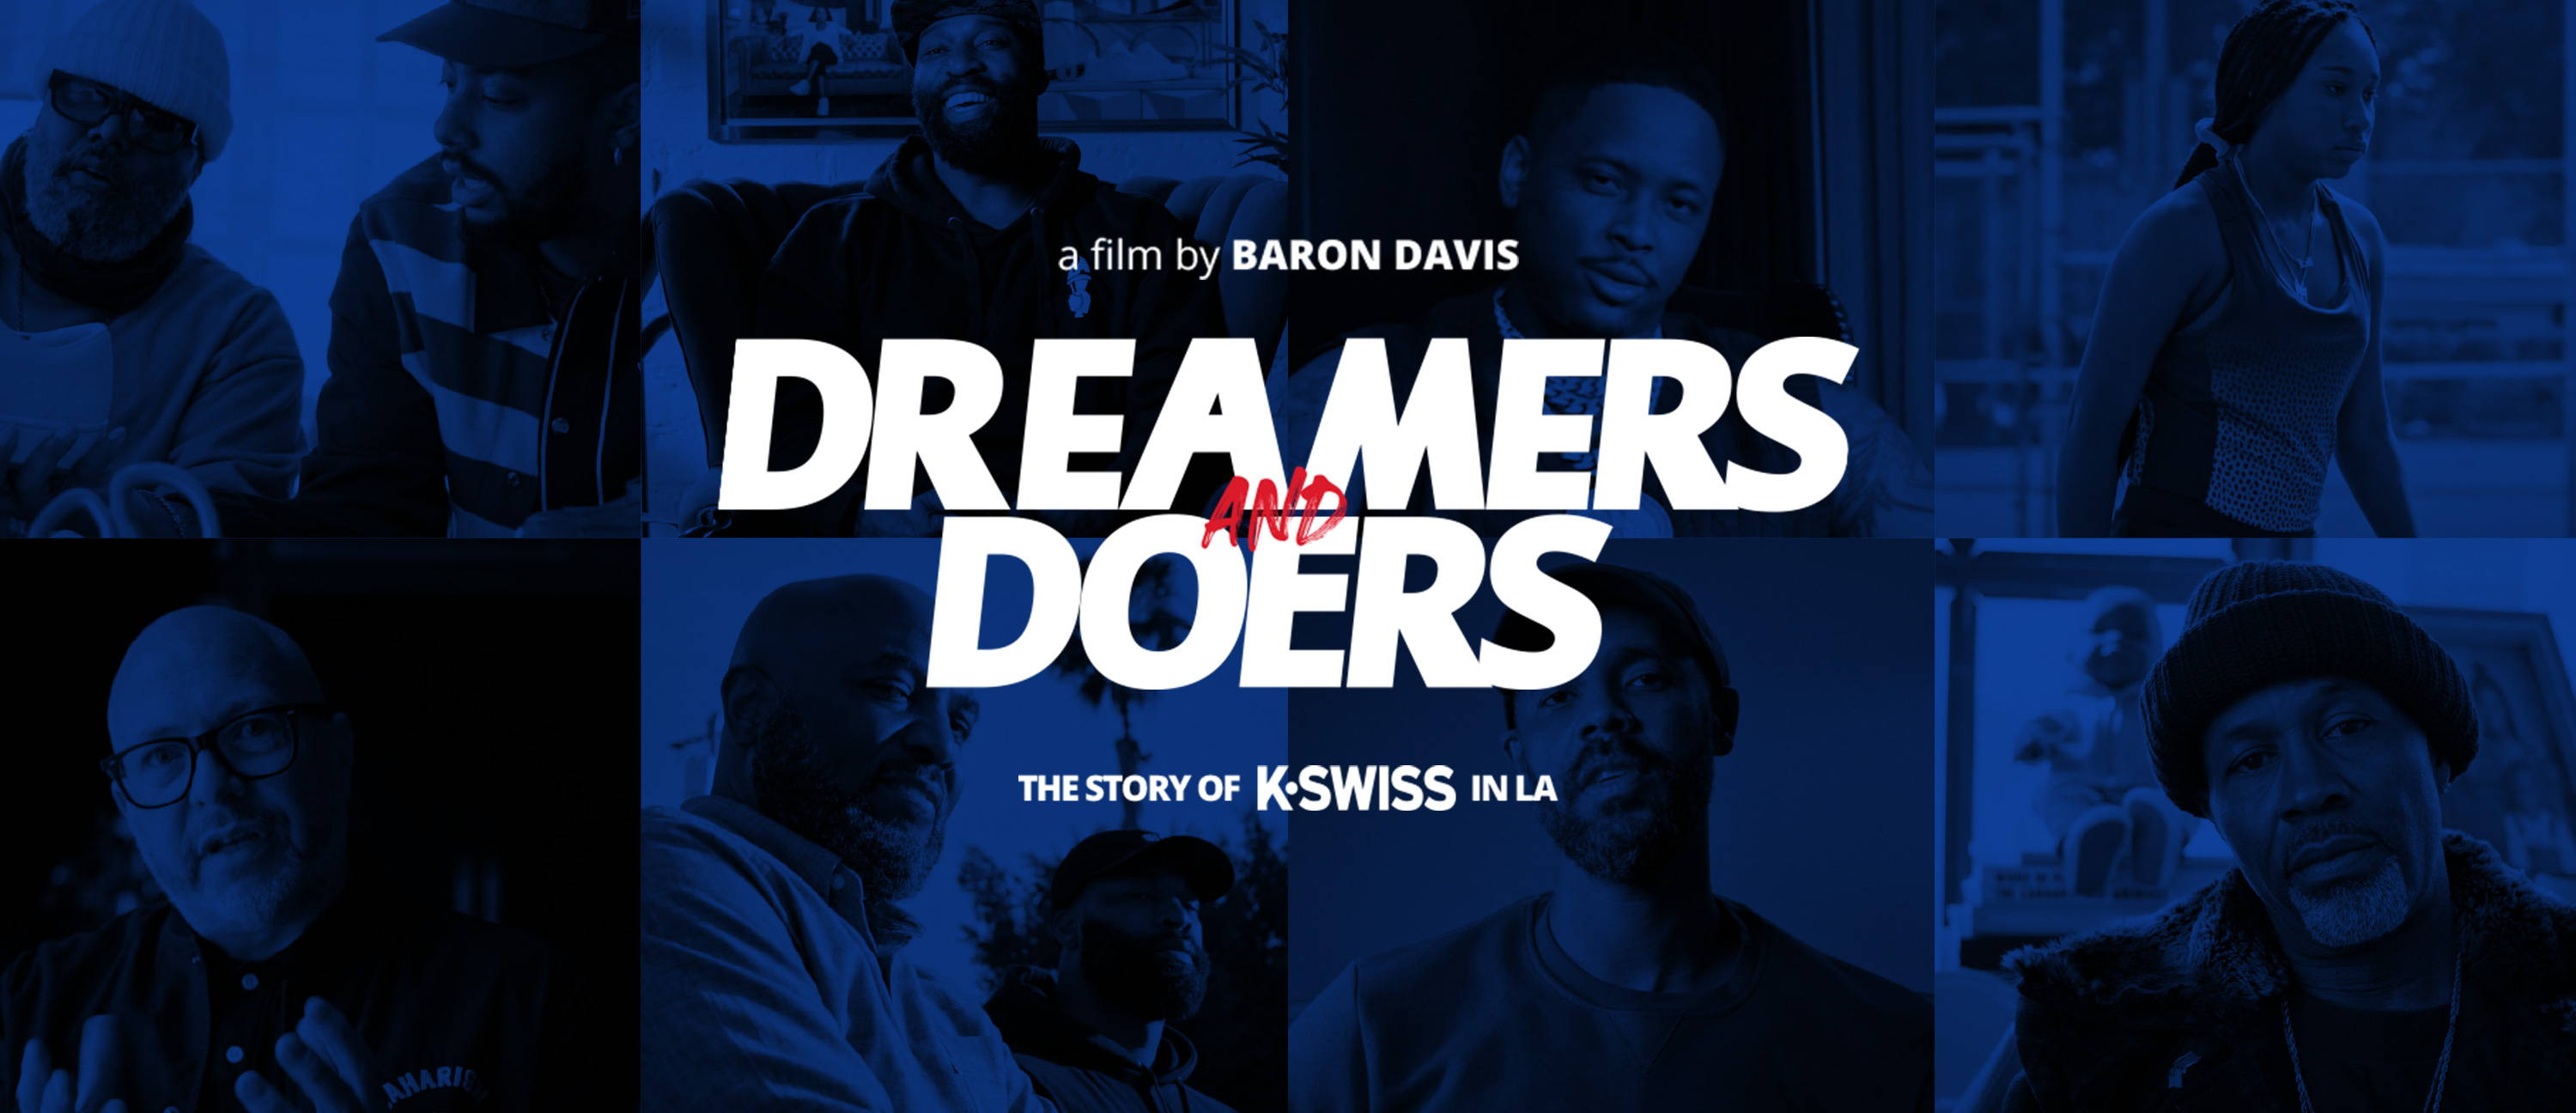 A Film by Baron Davis. Dreamers and Doers. The story of K-Swiss in LA